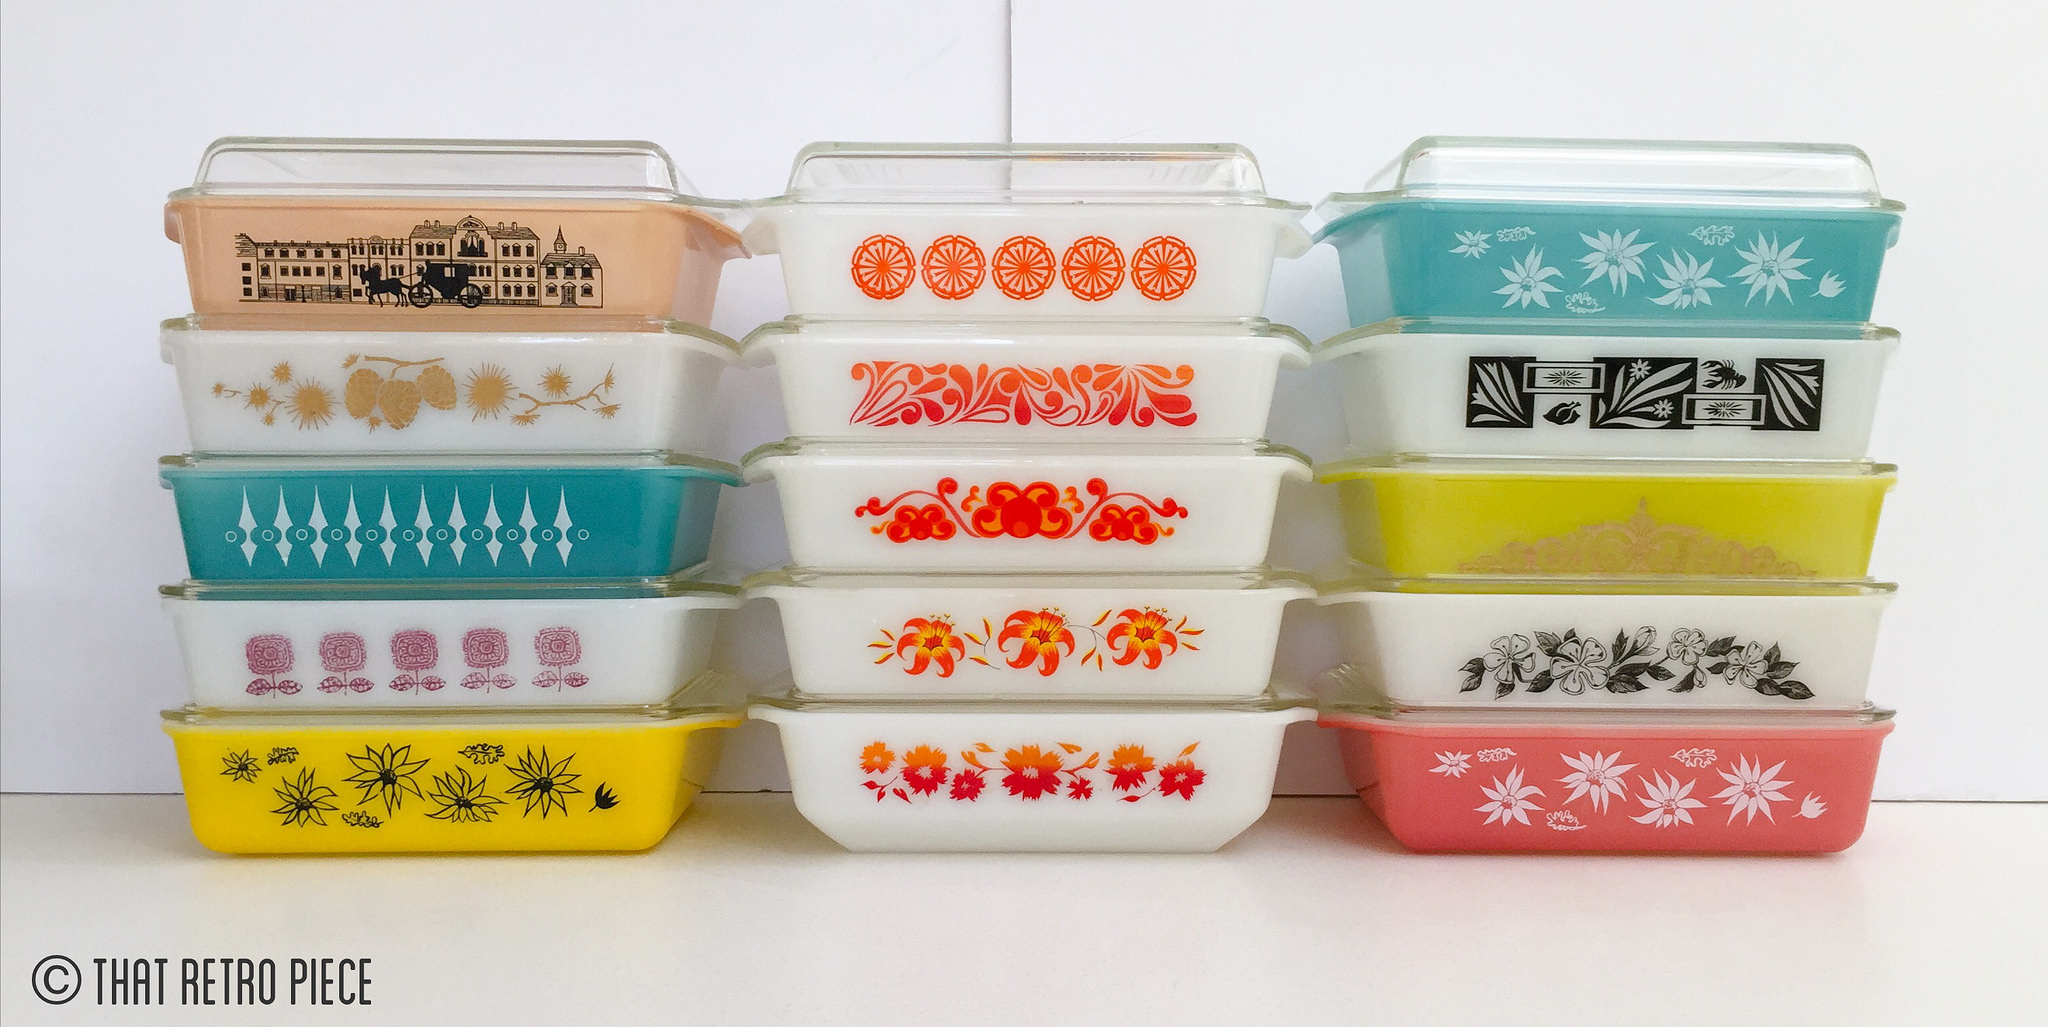 Agee/Crown Pyrex oblong casseroles (Photo credit: That Retro Piece)